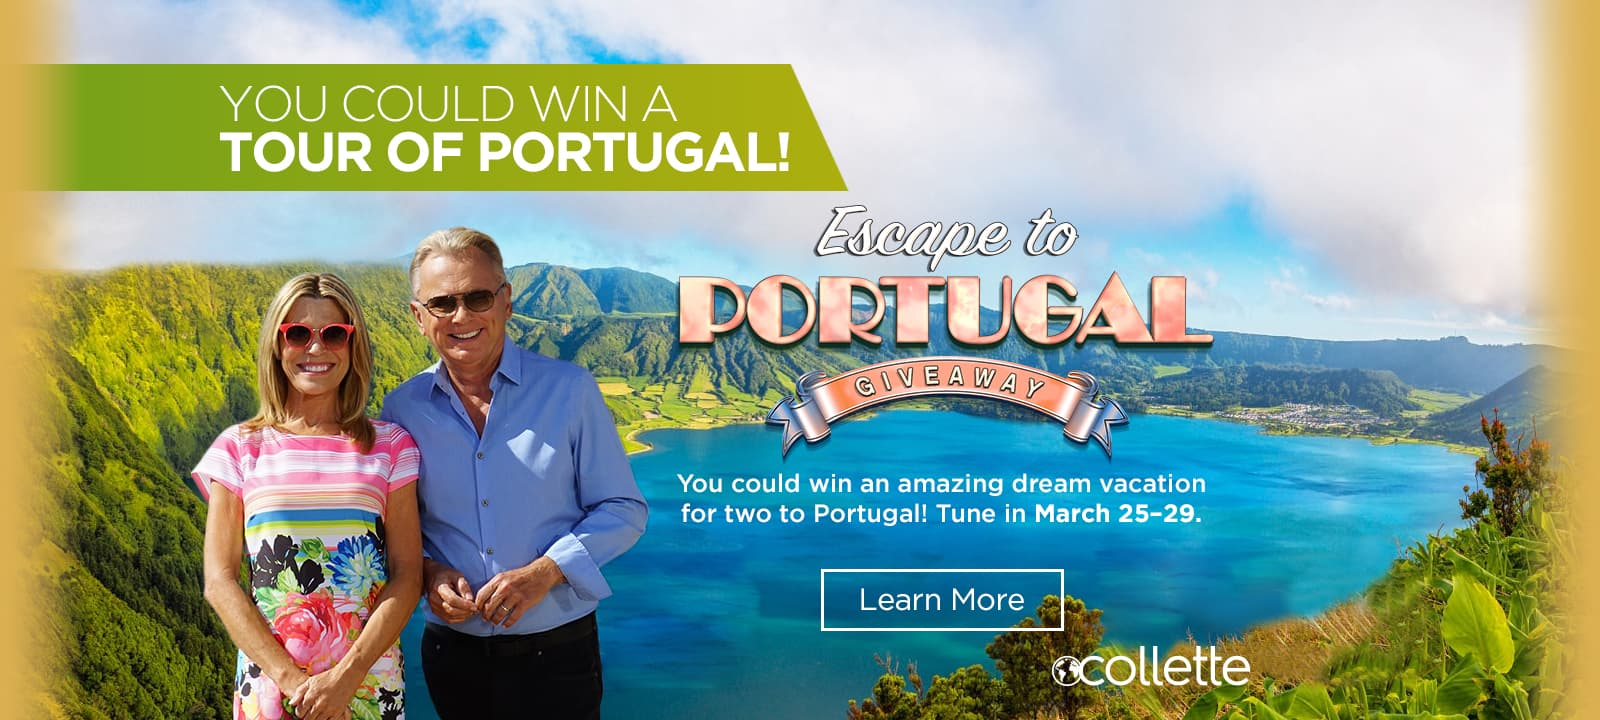 Wheel of Fortune Hawaii Vacation Giveaway